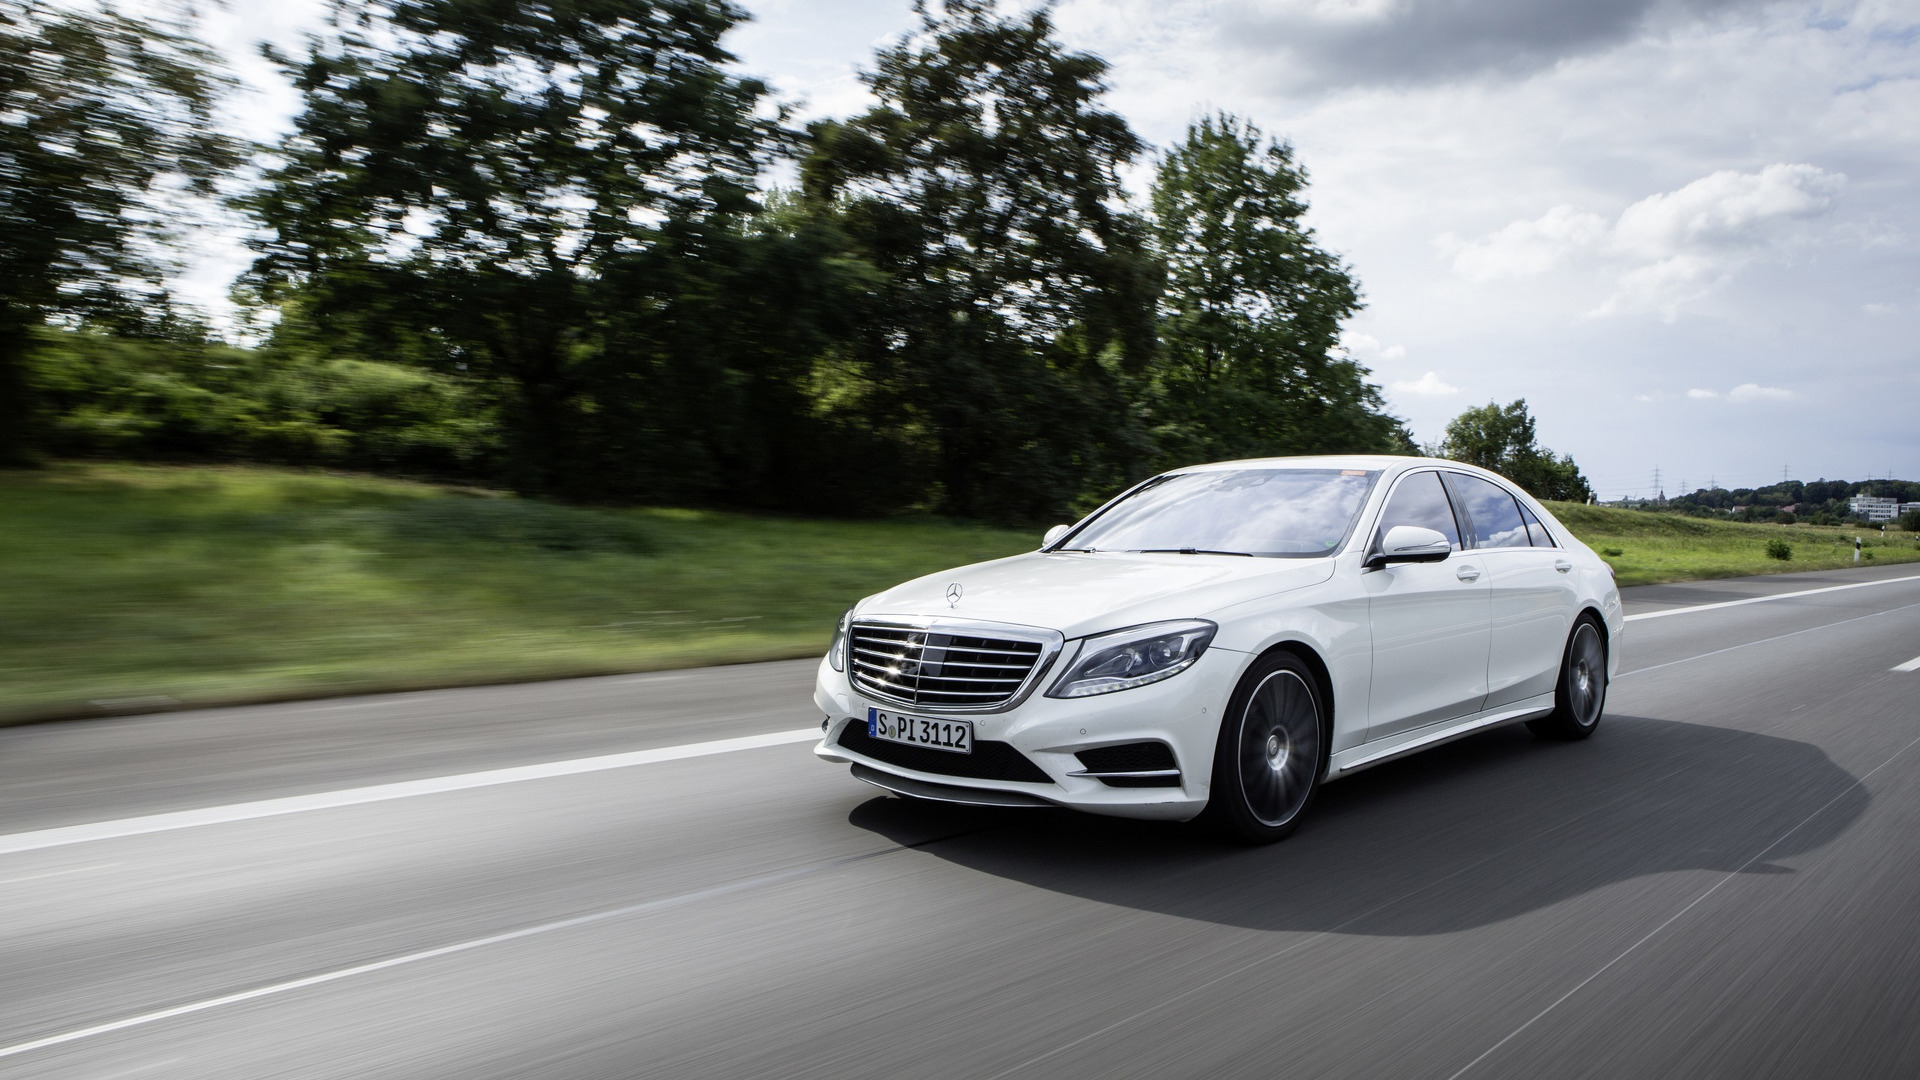 2017 mercedes s class gets new biturbo v8 and inline six engines. Black Bedroom Furniture Sets. Home Design Ideas